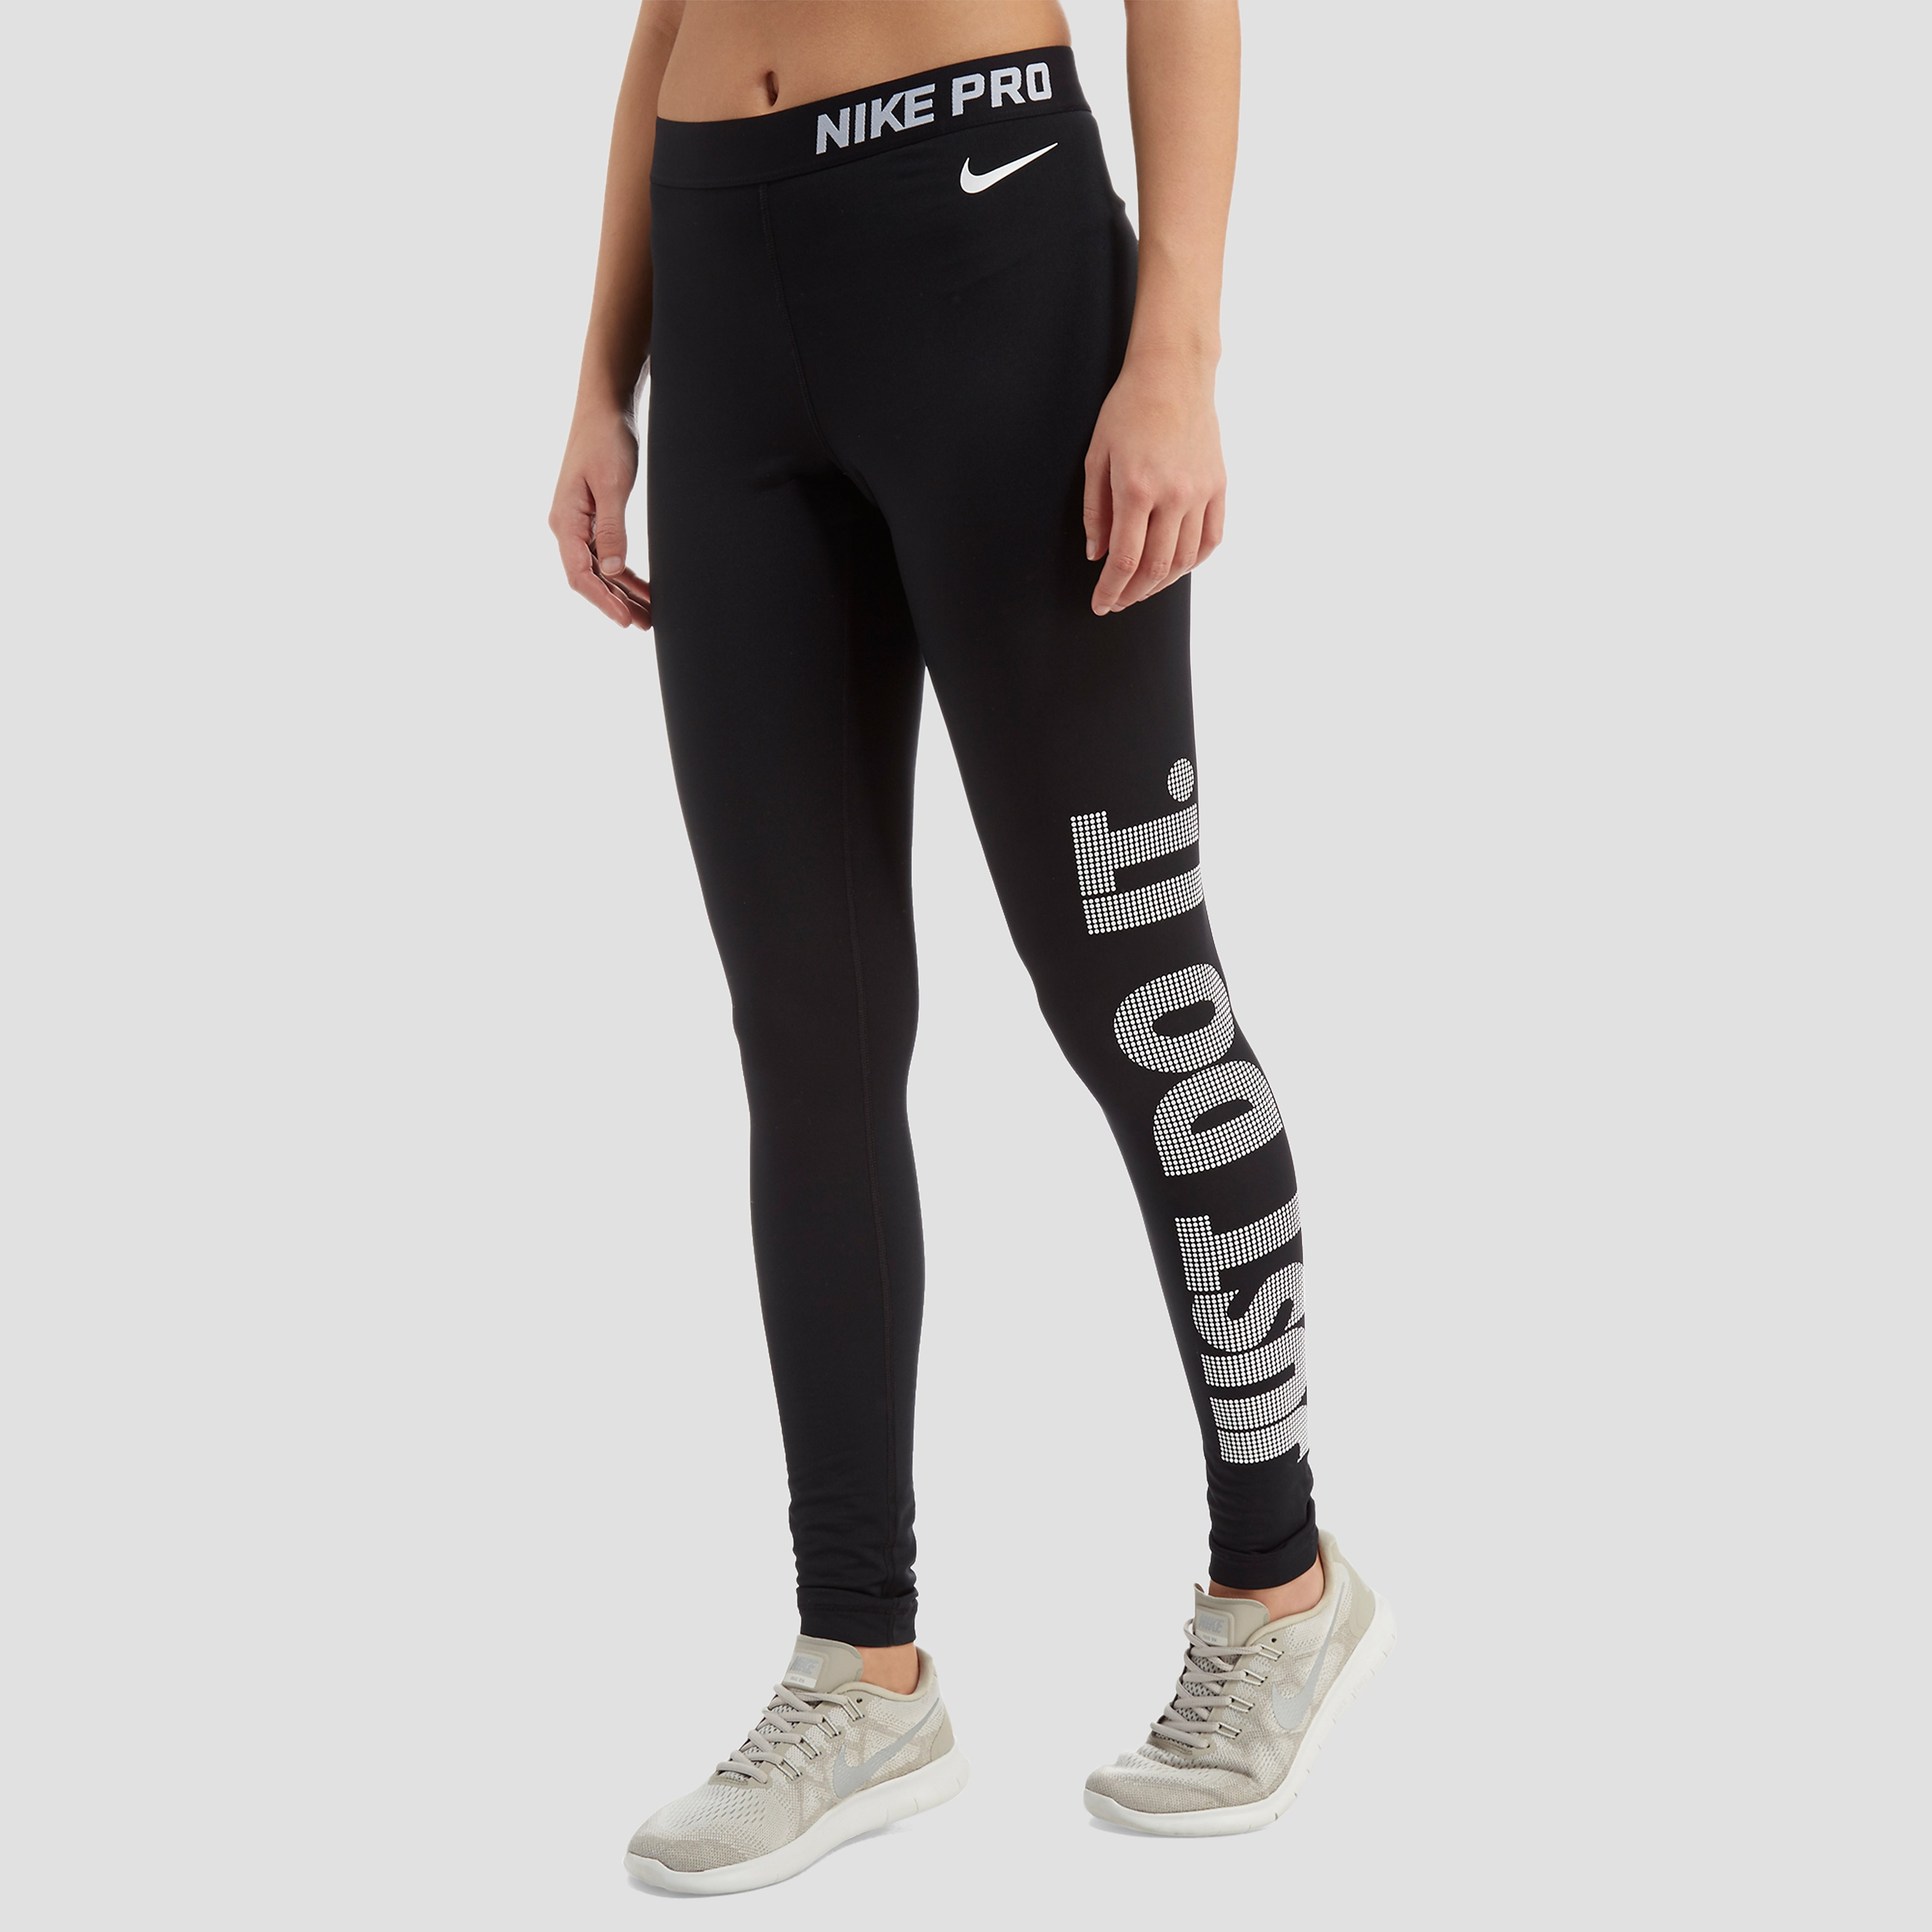 Nike Just Do It Women's Tights